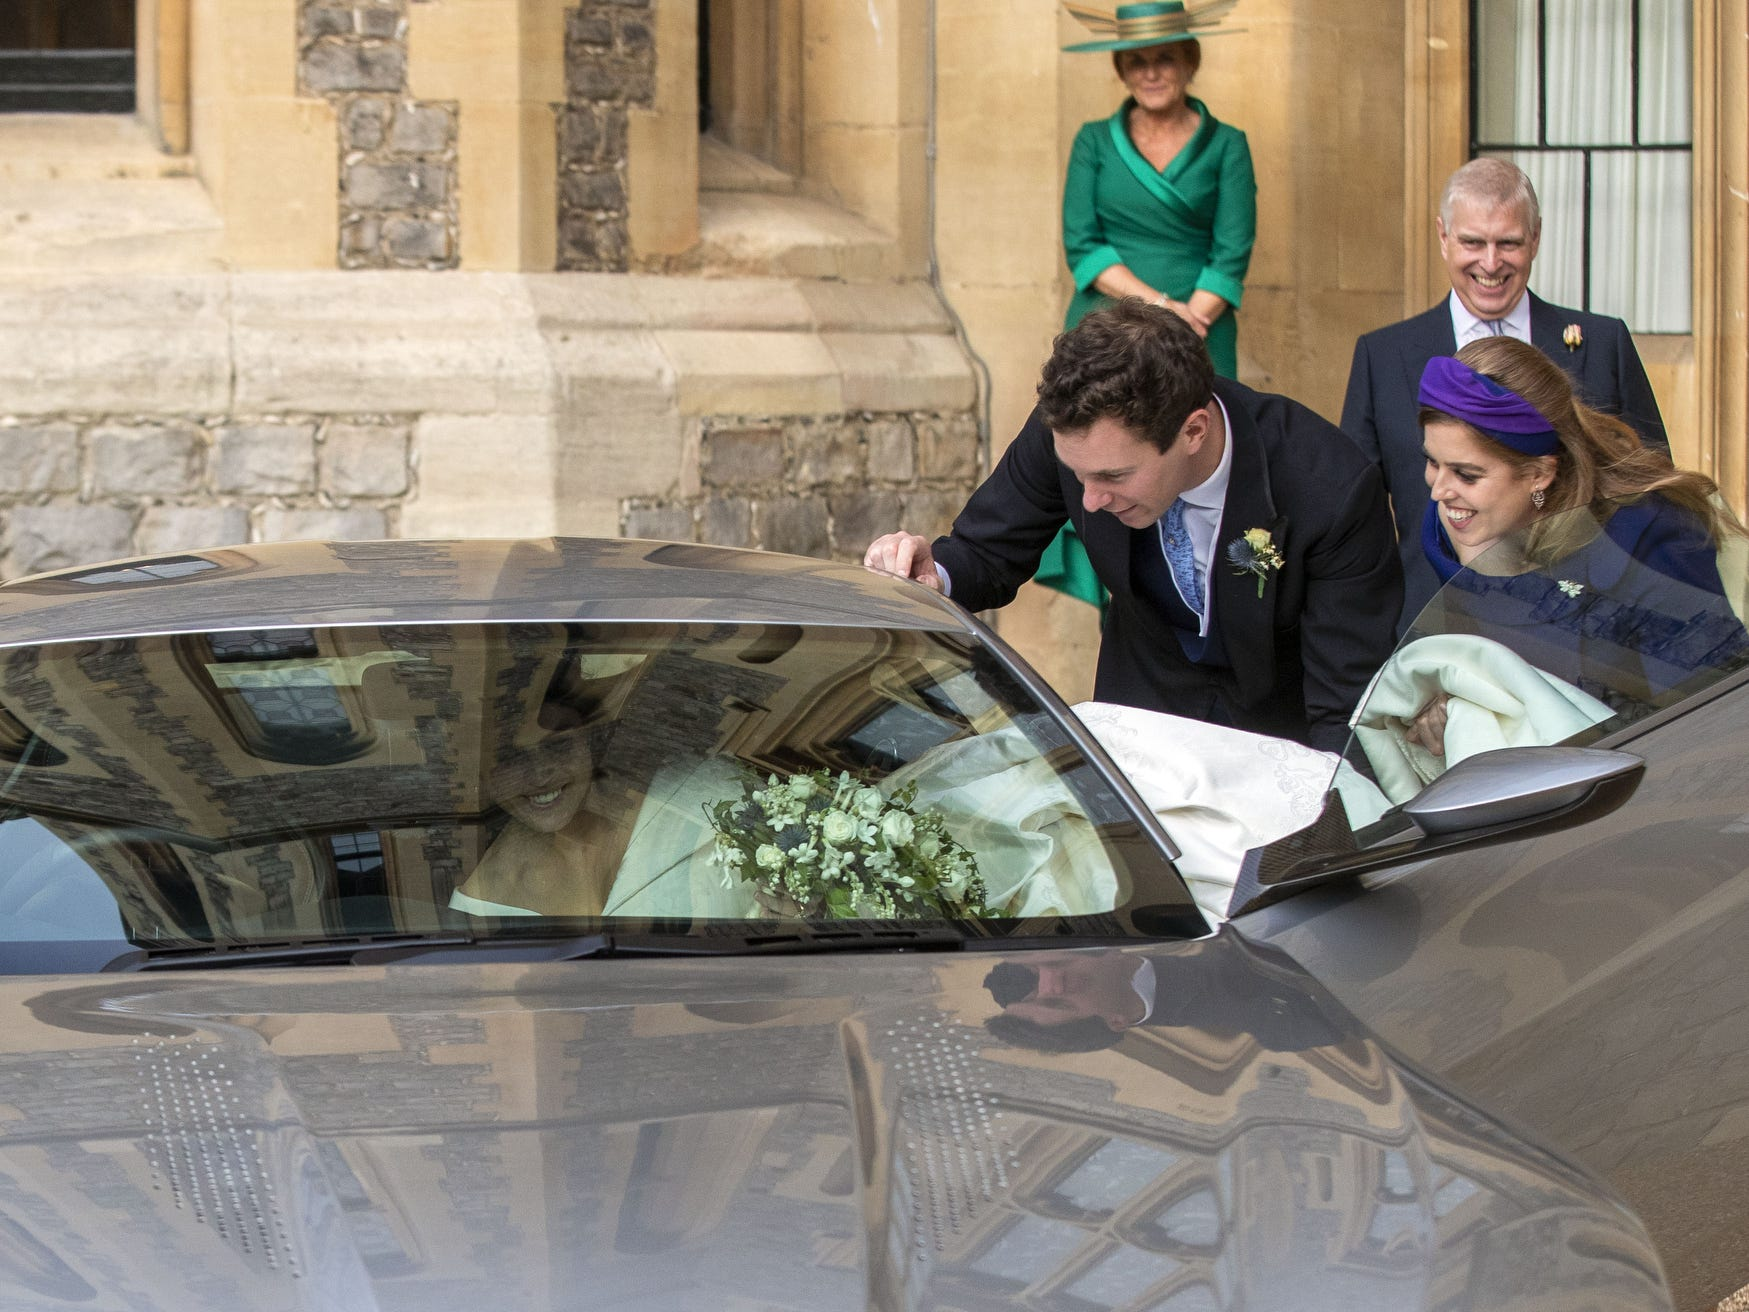 Princess Eugenie and Jack Brooksbank  are helped by Princess Beatrice and Prince Andrew, Duke of York leave Windsor Castle after their wedding for an evening reception at Royal Lodge, in Windsor, England.